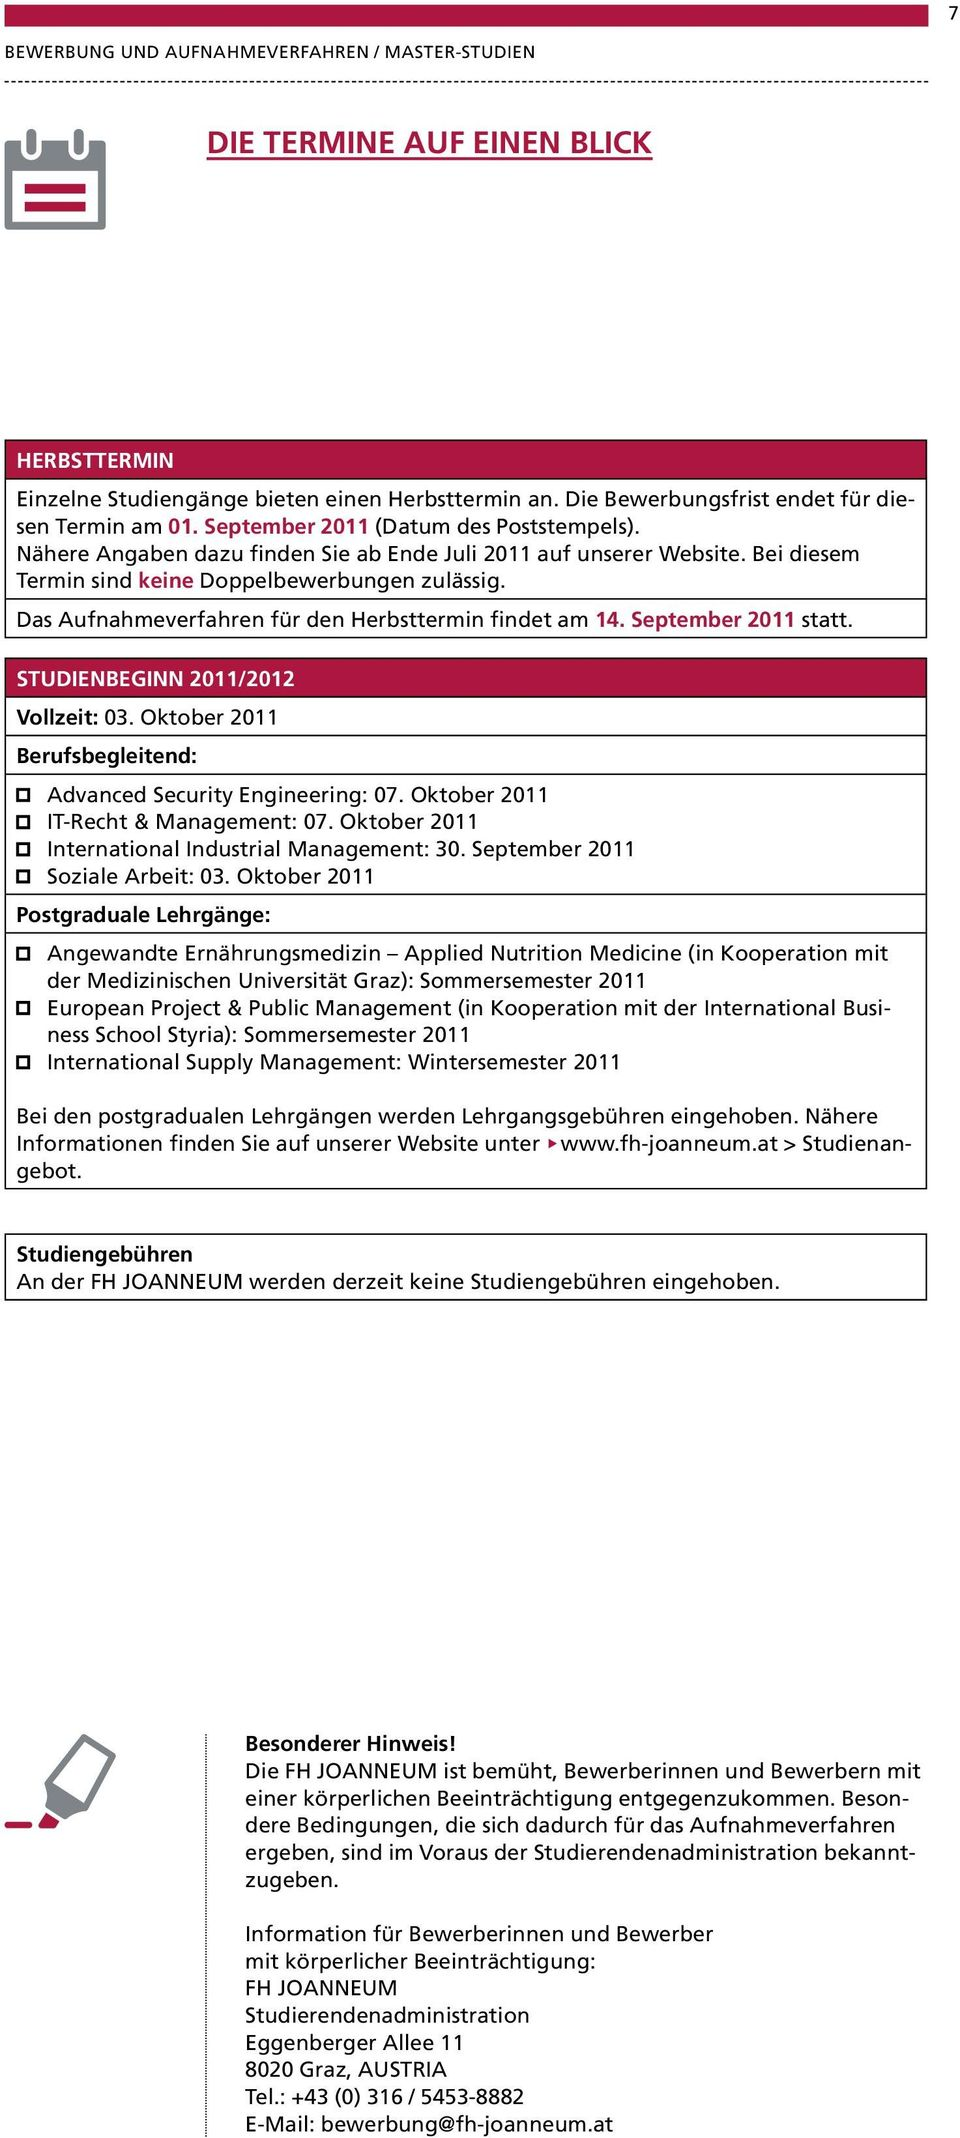 September 2011 statt. STUDIENBEGINN 2011/2012 Vollzeit: 03. Oktober 2011 Berufsbegleitend: Advanced Security Engineering: 07. Oktober 2011 IT-Recht & Management: 07.